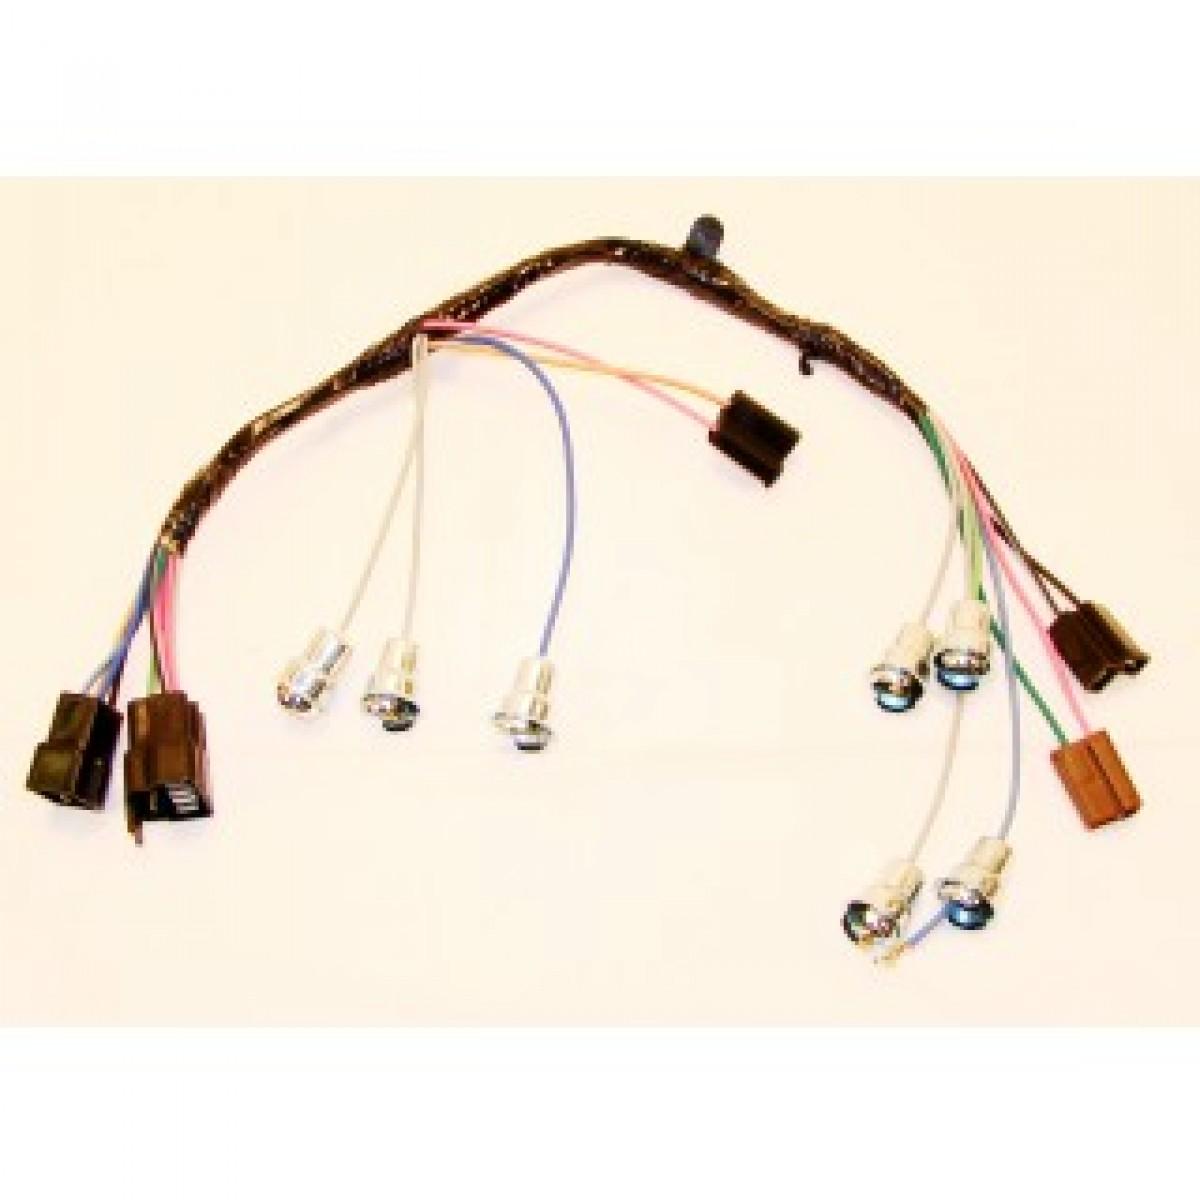 ... 1964 1966 chevy c10 dash instrument cer harness rh code510 com 1965  Chevy Pickup Wiring Diagram